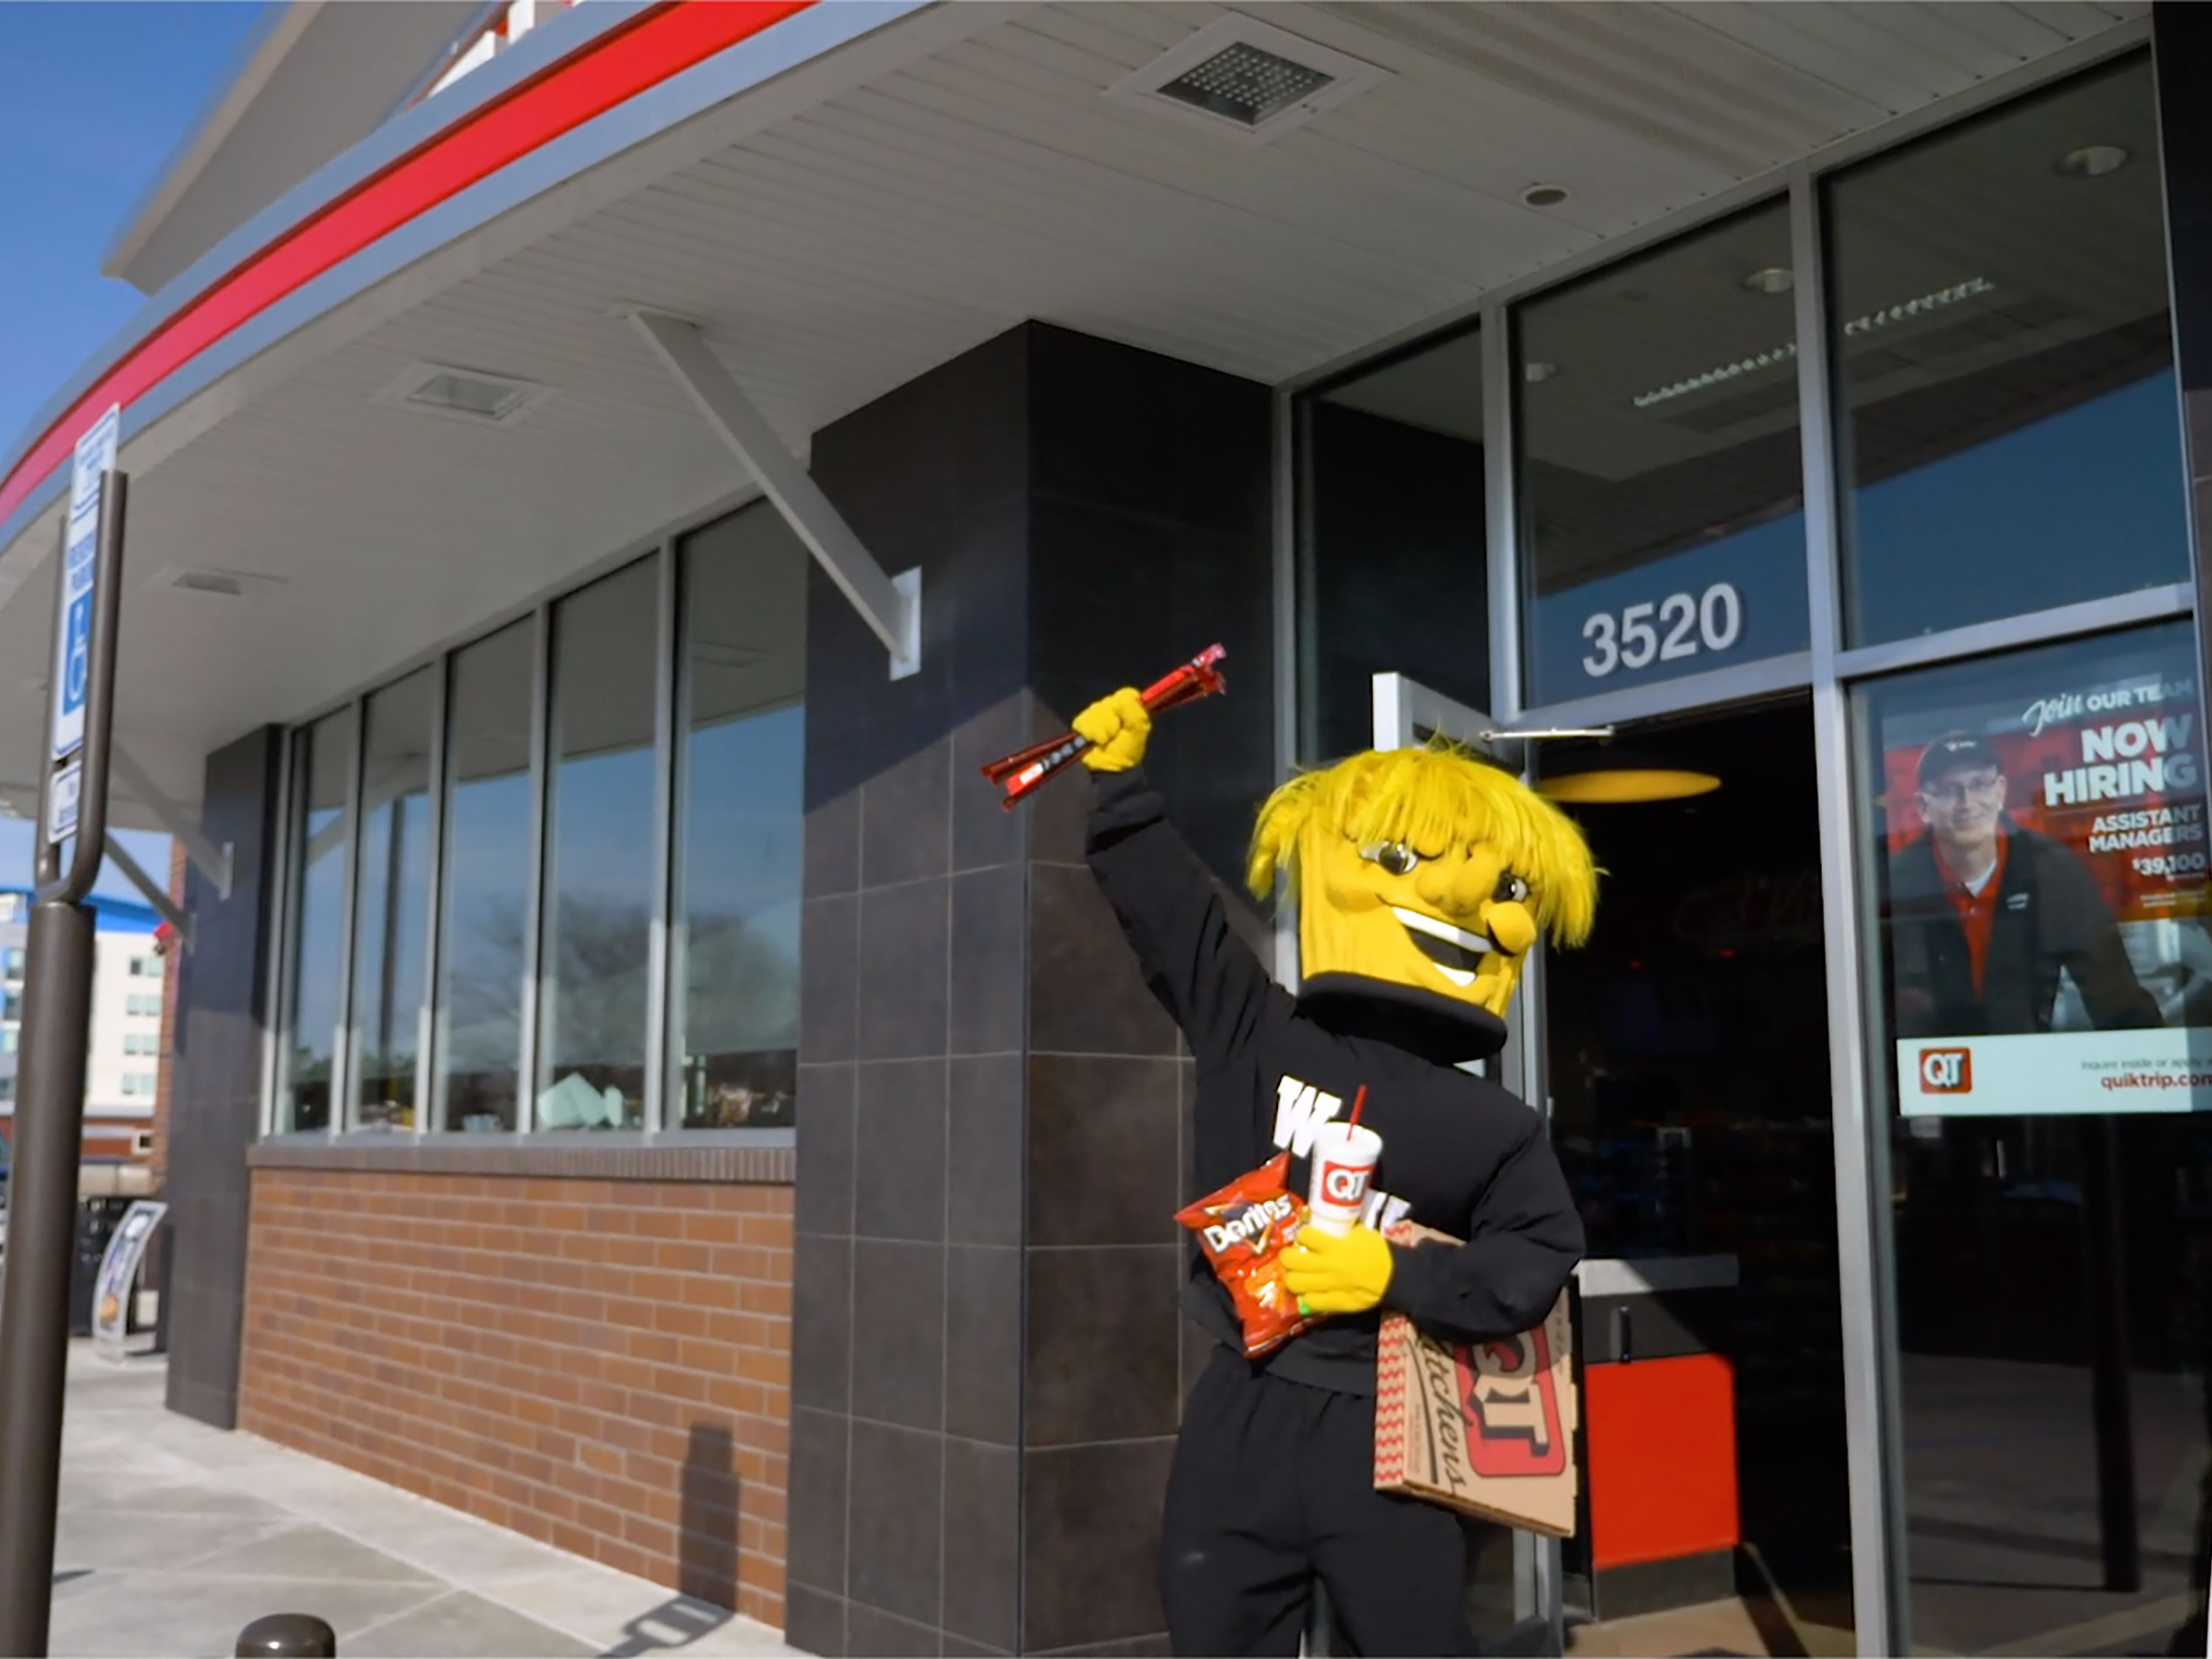 WuShock goes to QuickTrip